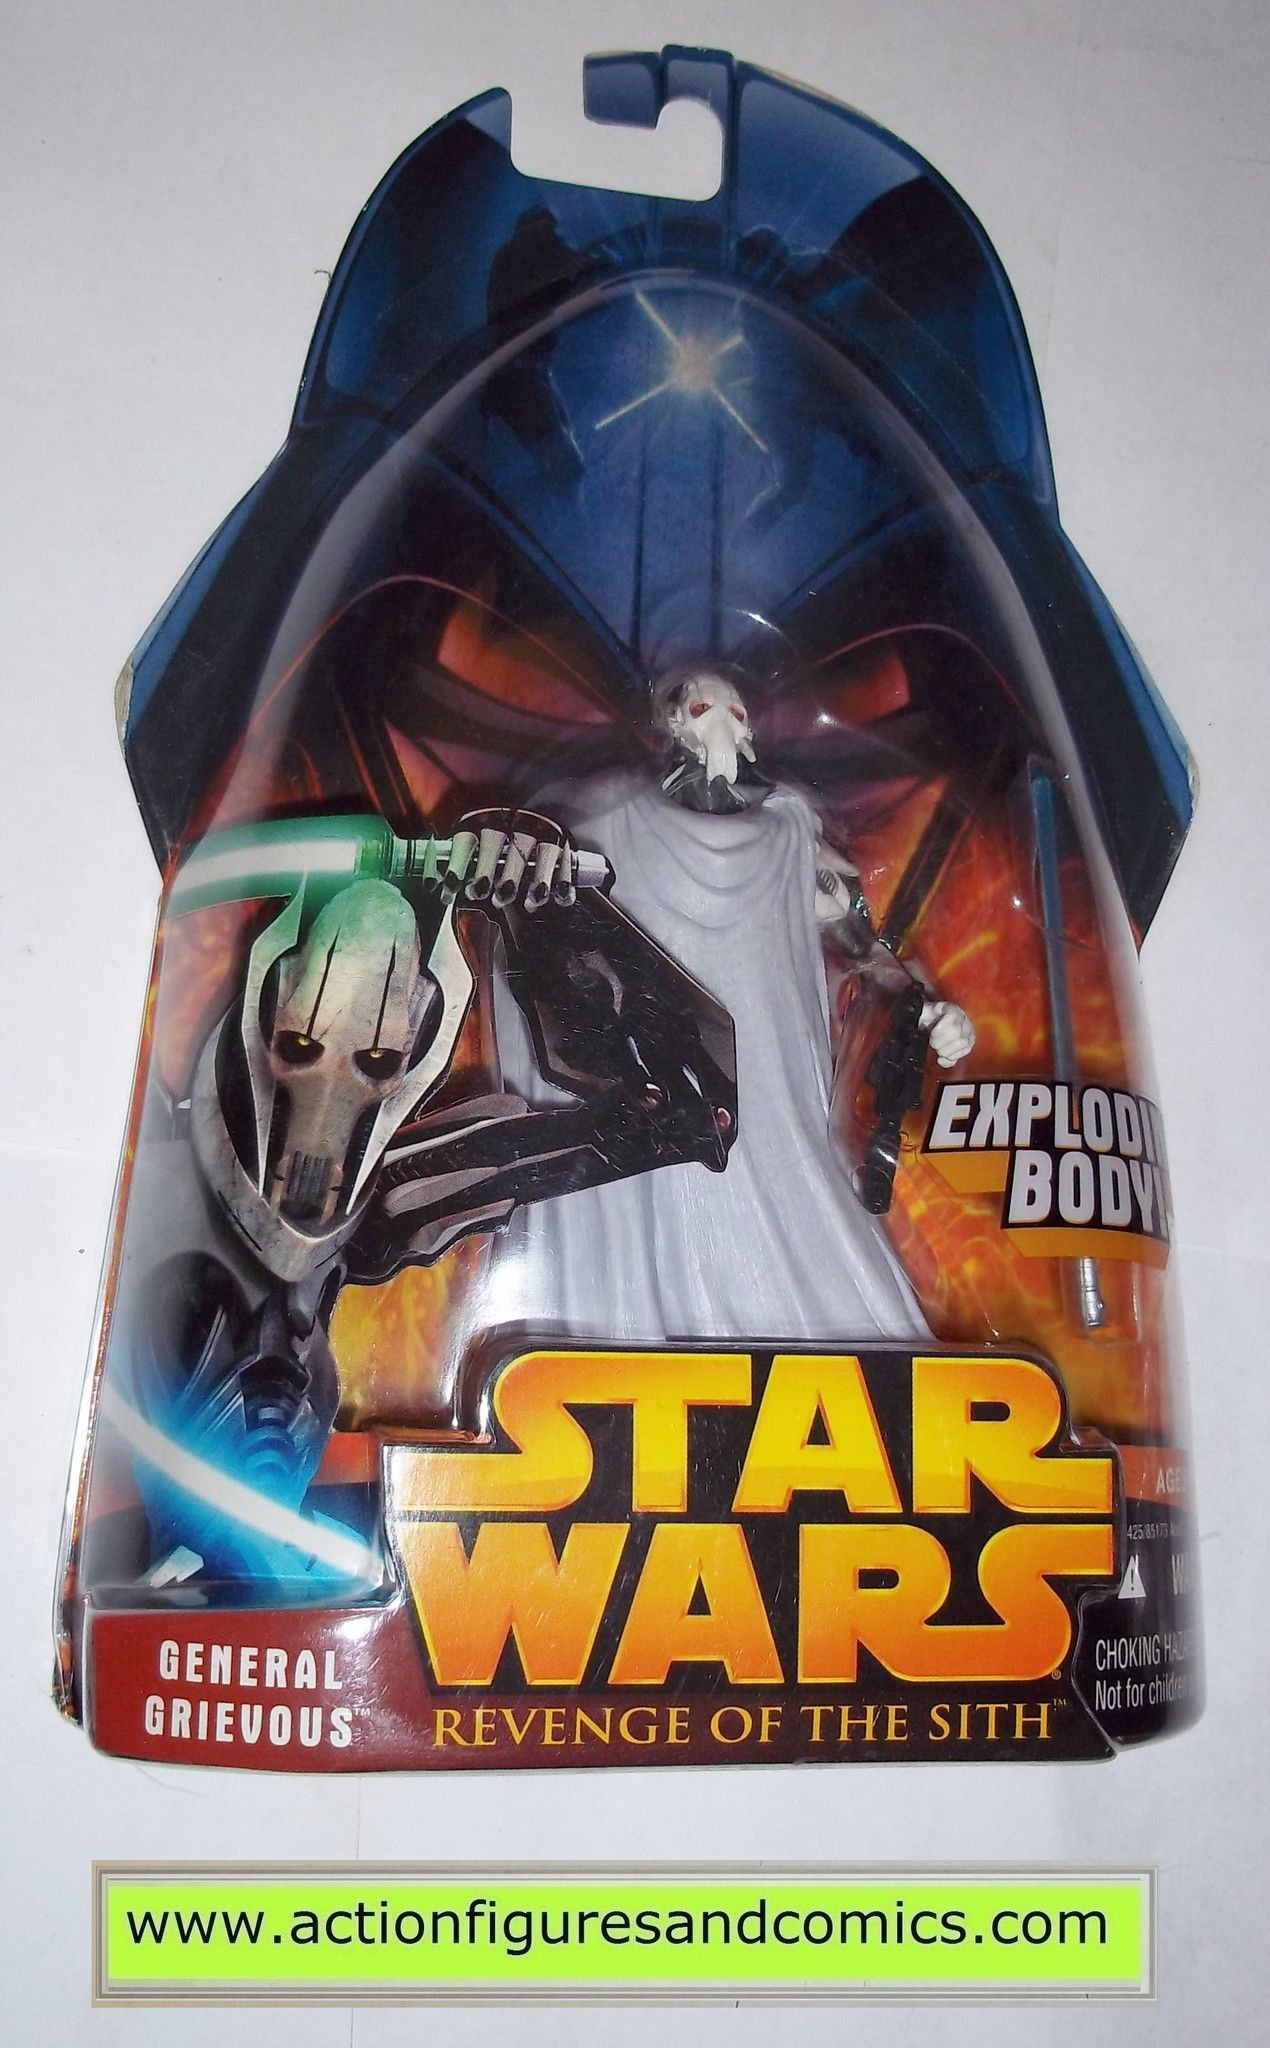 Star Wars Action Figures General Grievous 36 2005 Revenge Of The Sith Hasbro Toys Moc Mip Mib Star Wars Action Figures Star Wars Toys Star Wars Figures